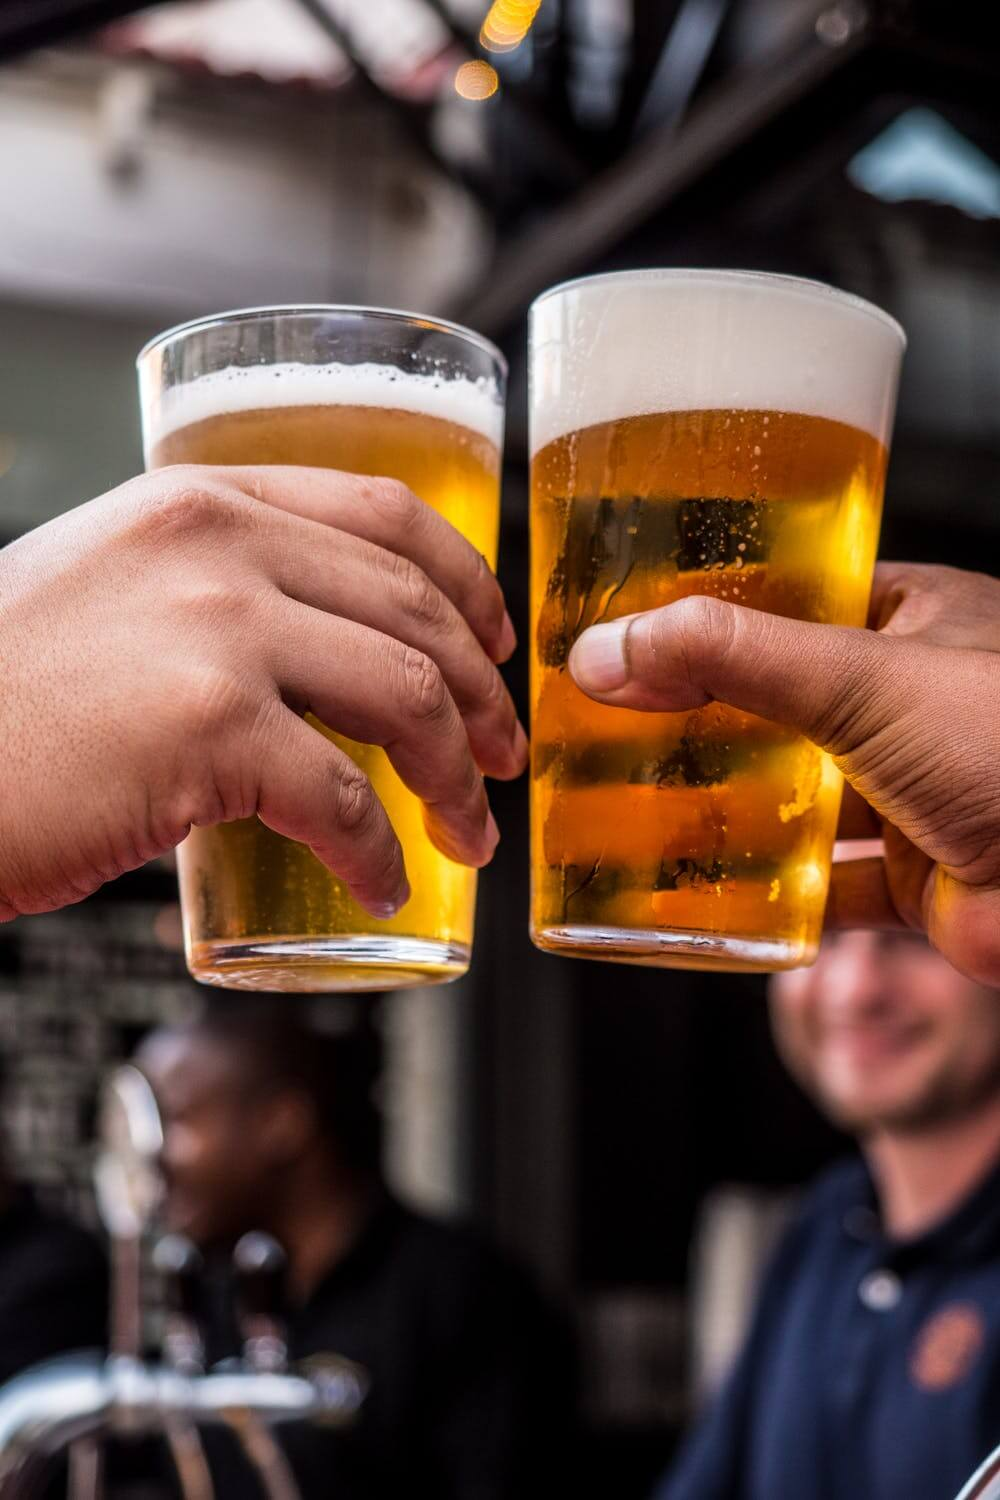 https://www.pexels.com/photo/two-persons-holding-drinking-glasses-filled-with-beer-1089930/